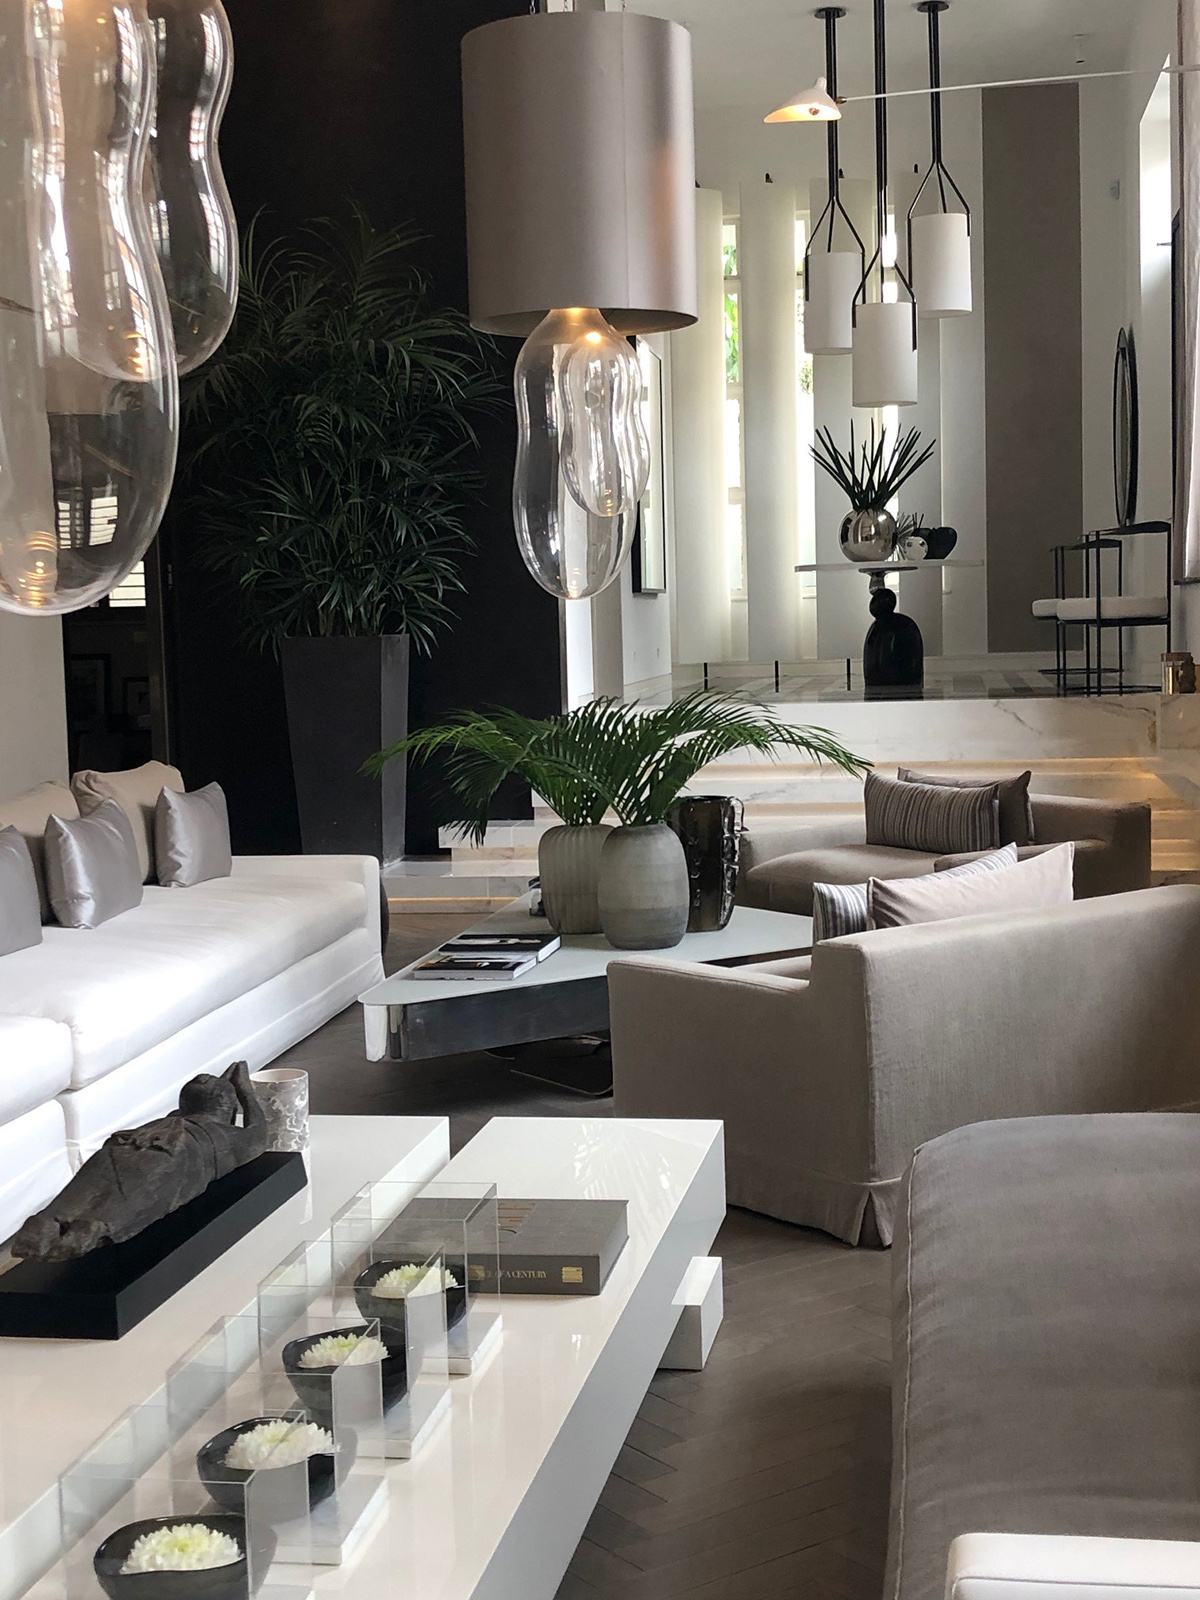 Home of interior designer Kelly Hoppen with open plan living space and entrance in her signature taupe. For the full house tour listen to the Great Indoors podcast with Sophie Robinson and Kate Watson Smyth. #openplan #sophierobinson #kellyhoppen